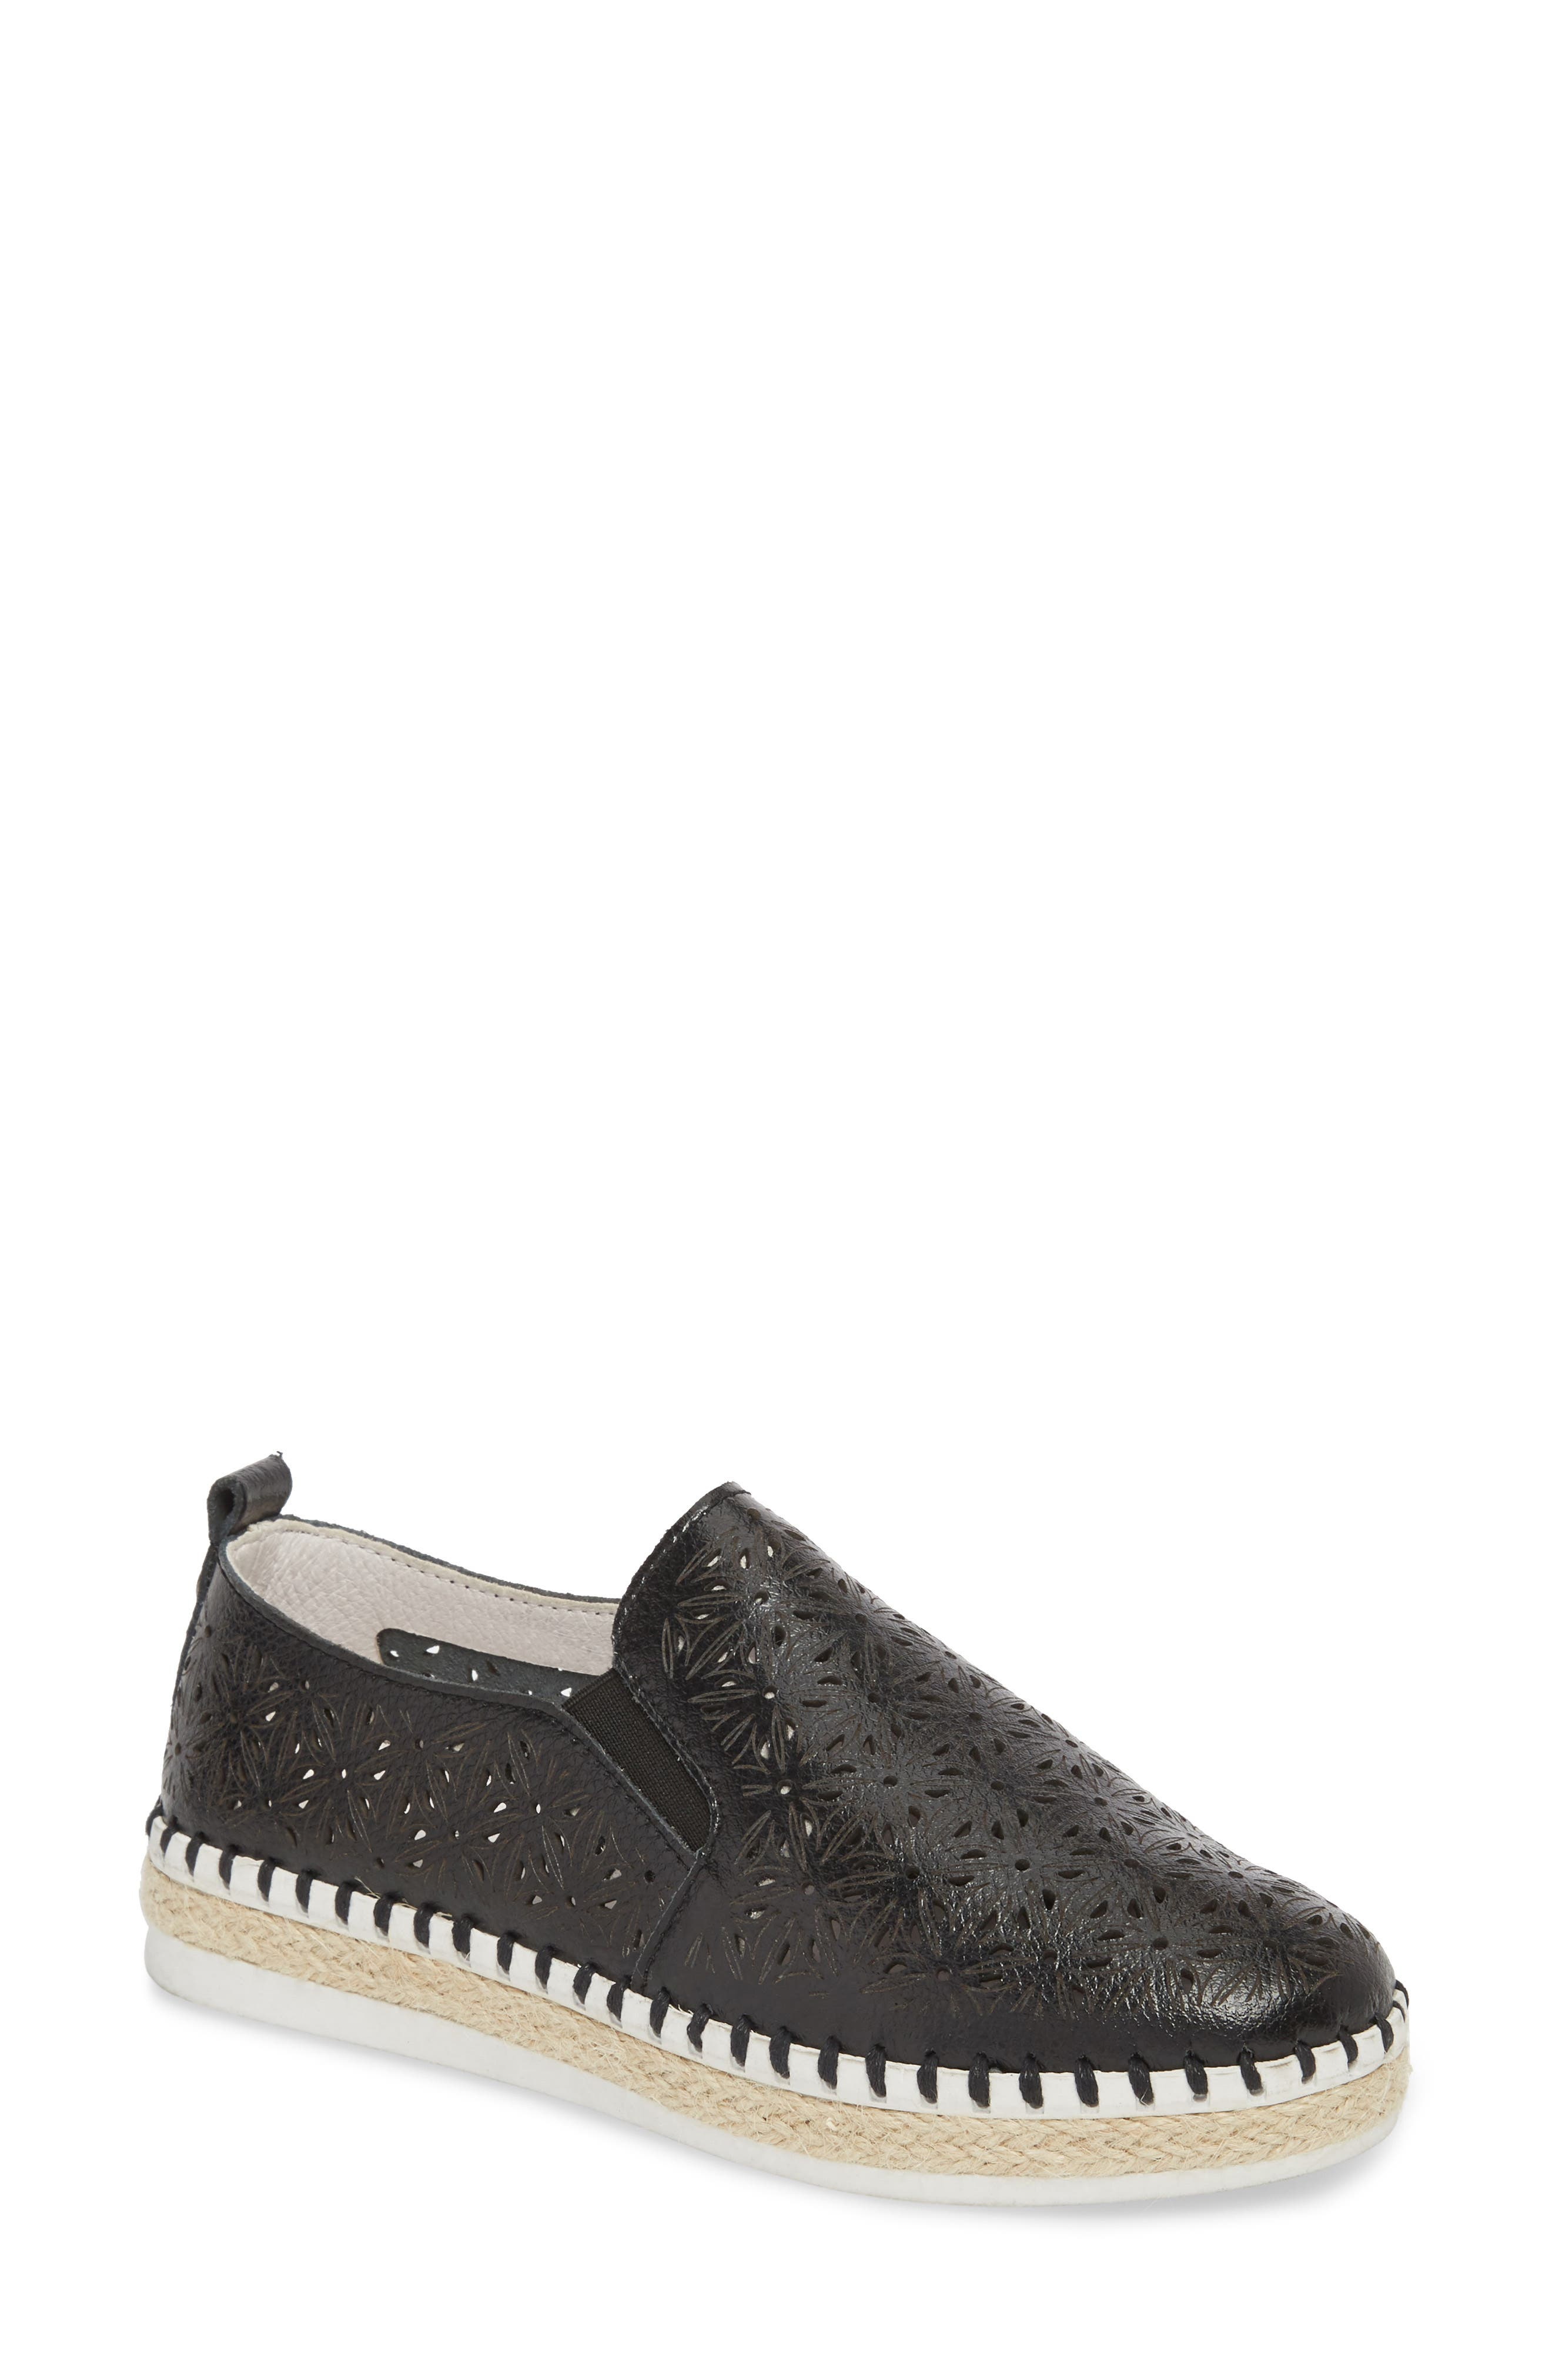 TW101 Espadrille Flat,                             Main thumbnail 1, color,                             BLACK LEATHER